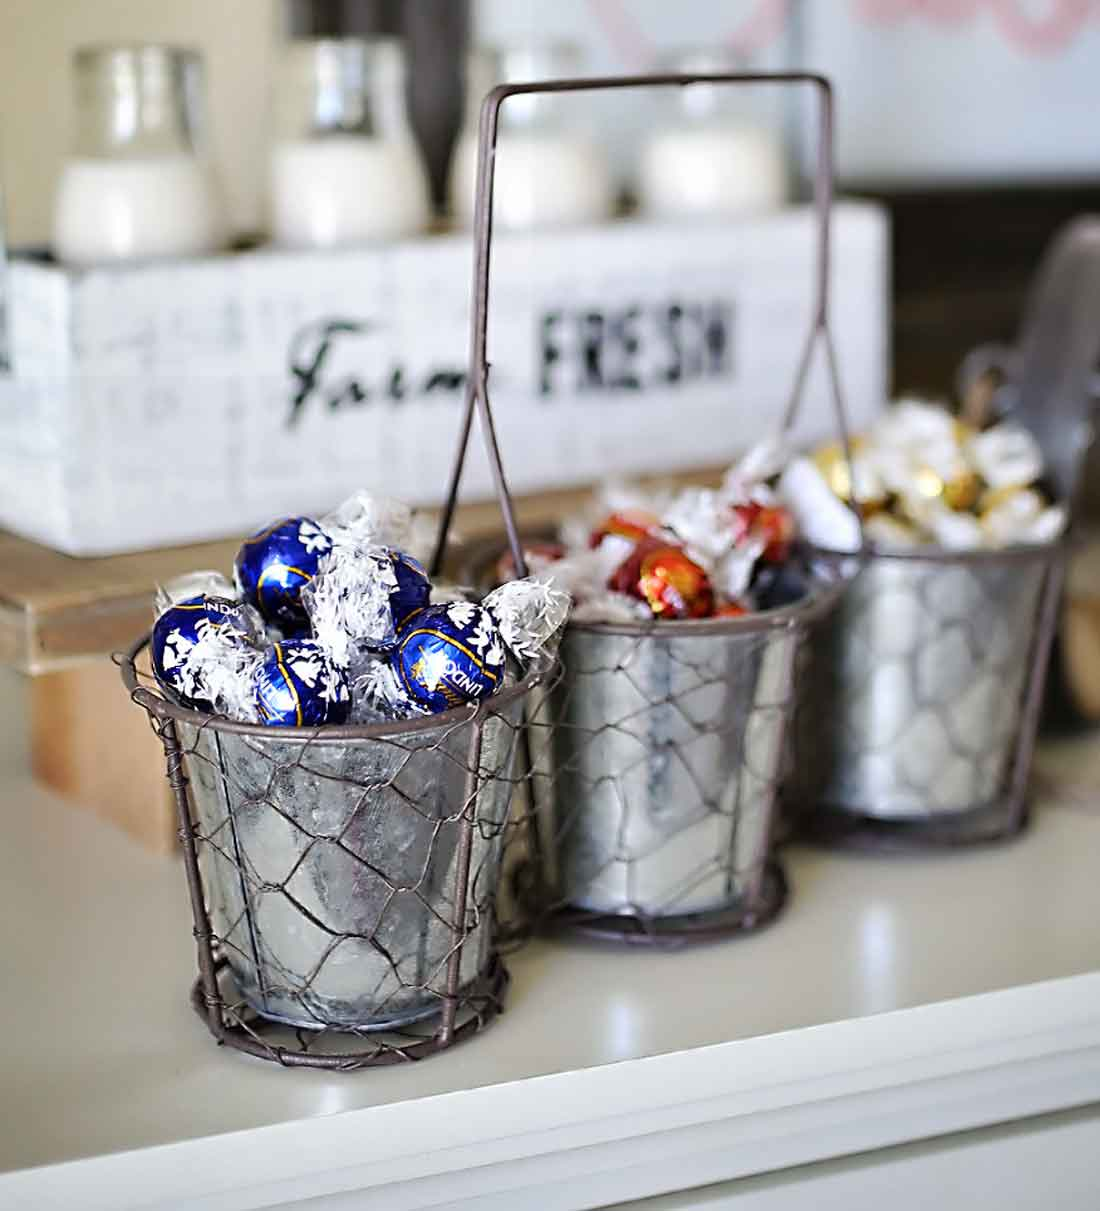 Cutest Coffee and Hot Cocoa bar ever! Great tips for recreating this on your own!!!